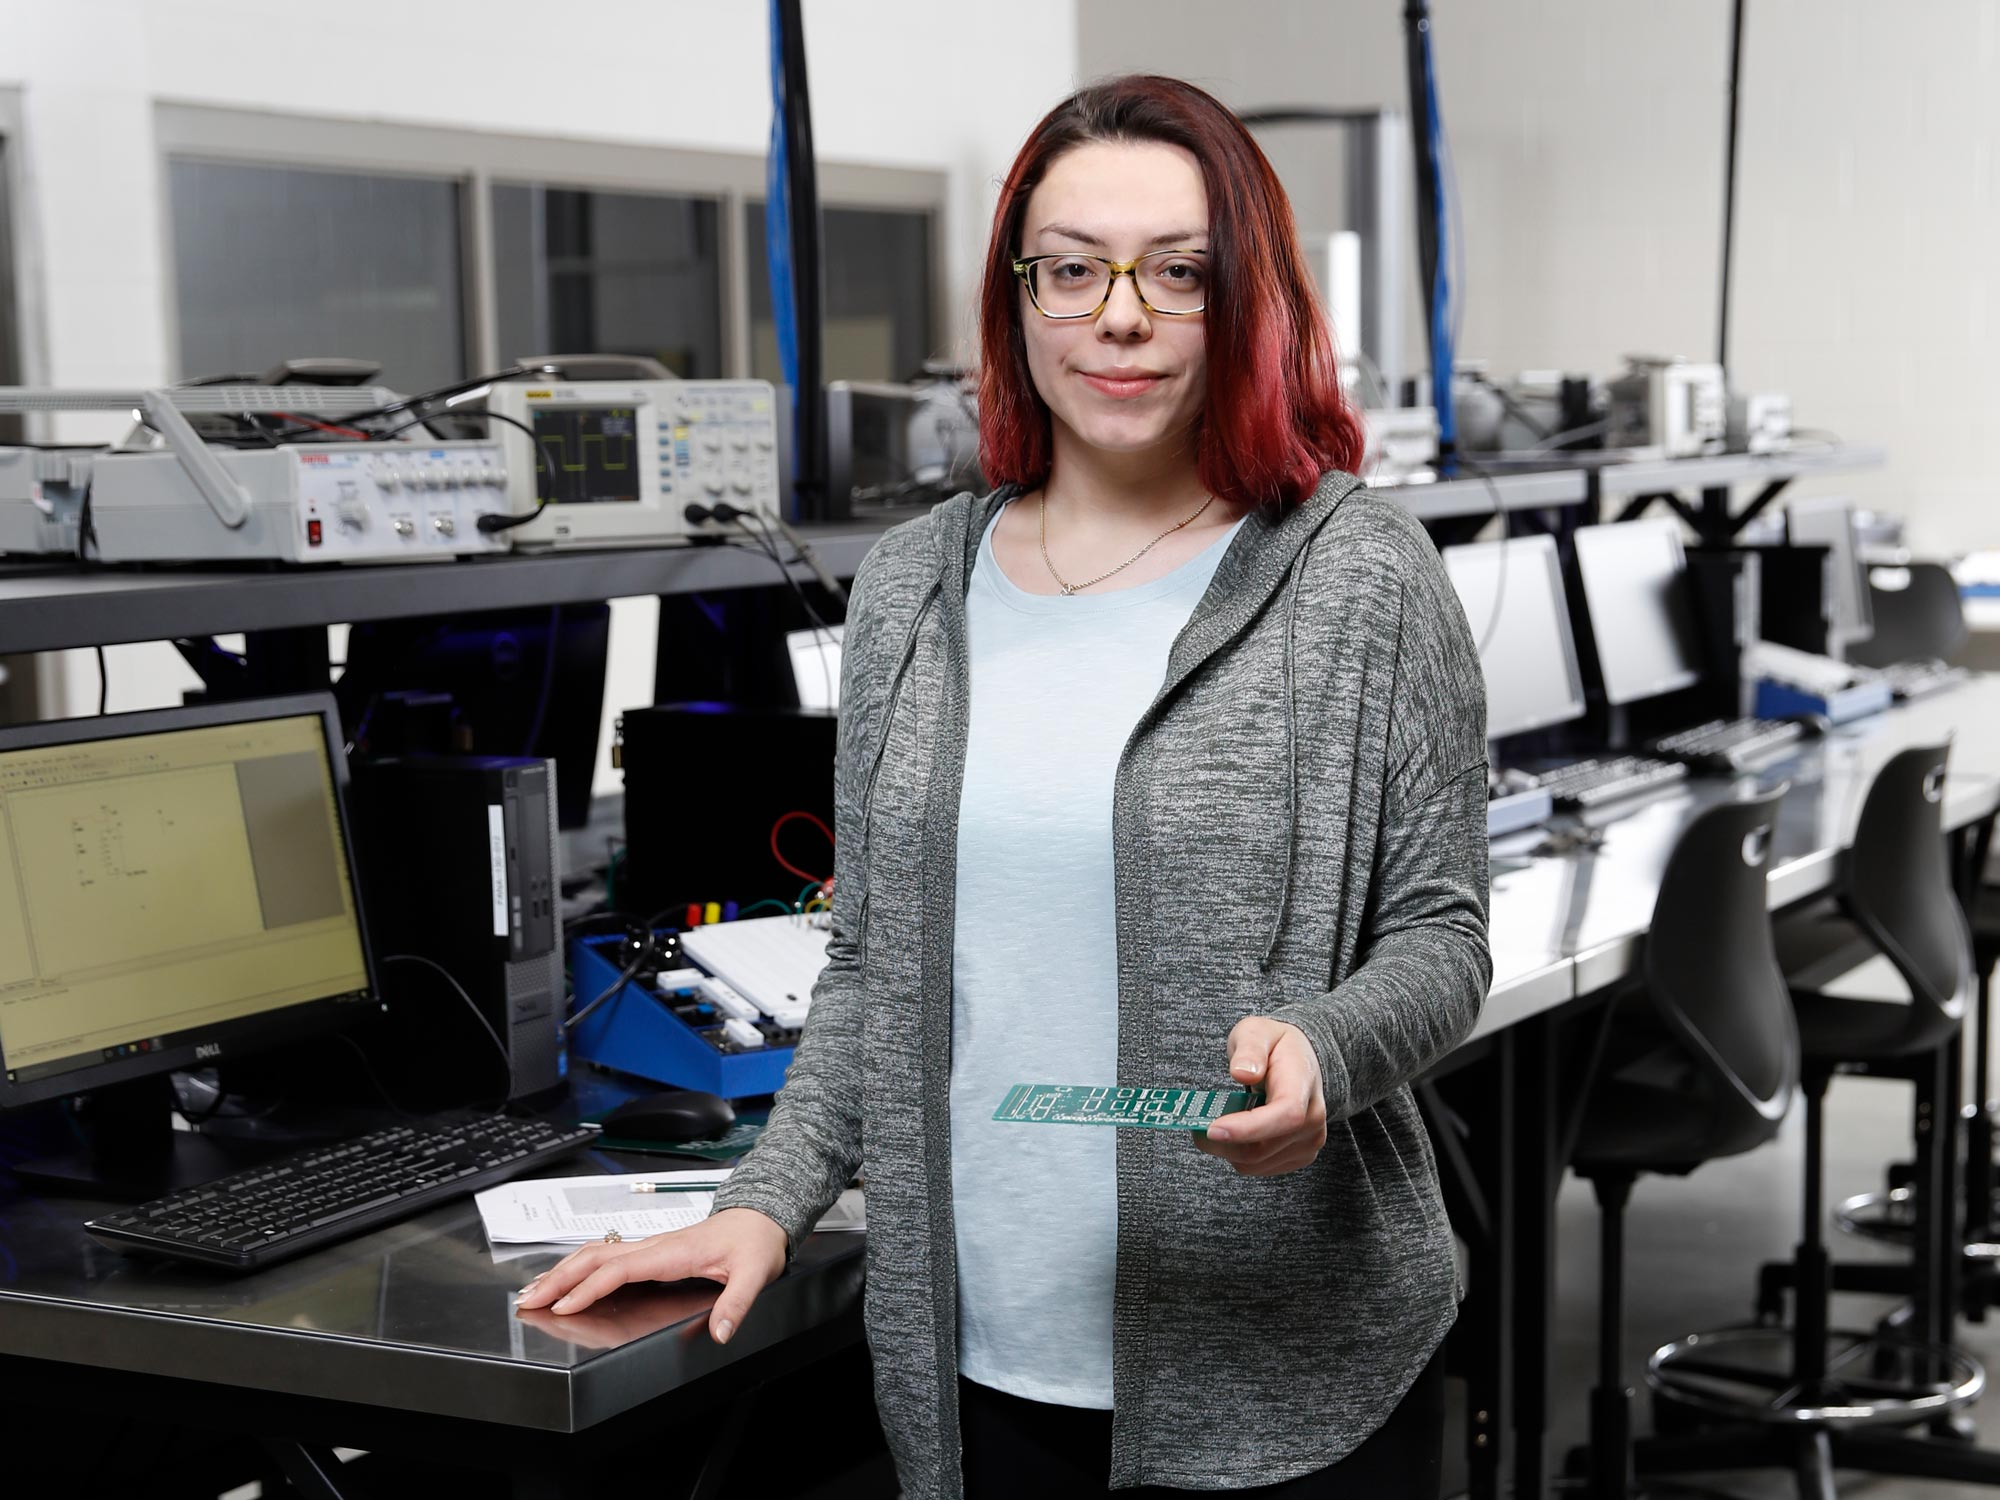 Female student working on automated computer interface